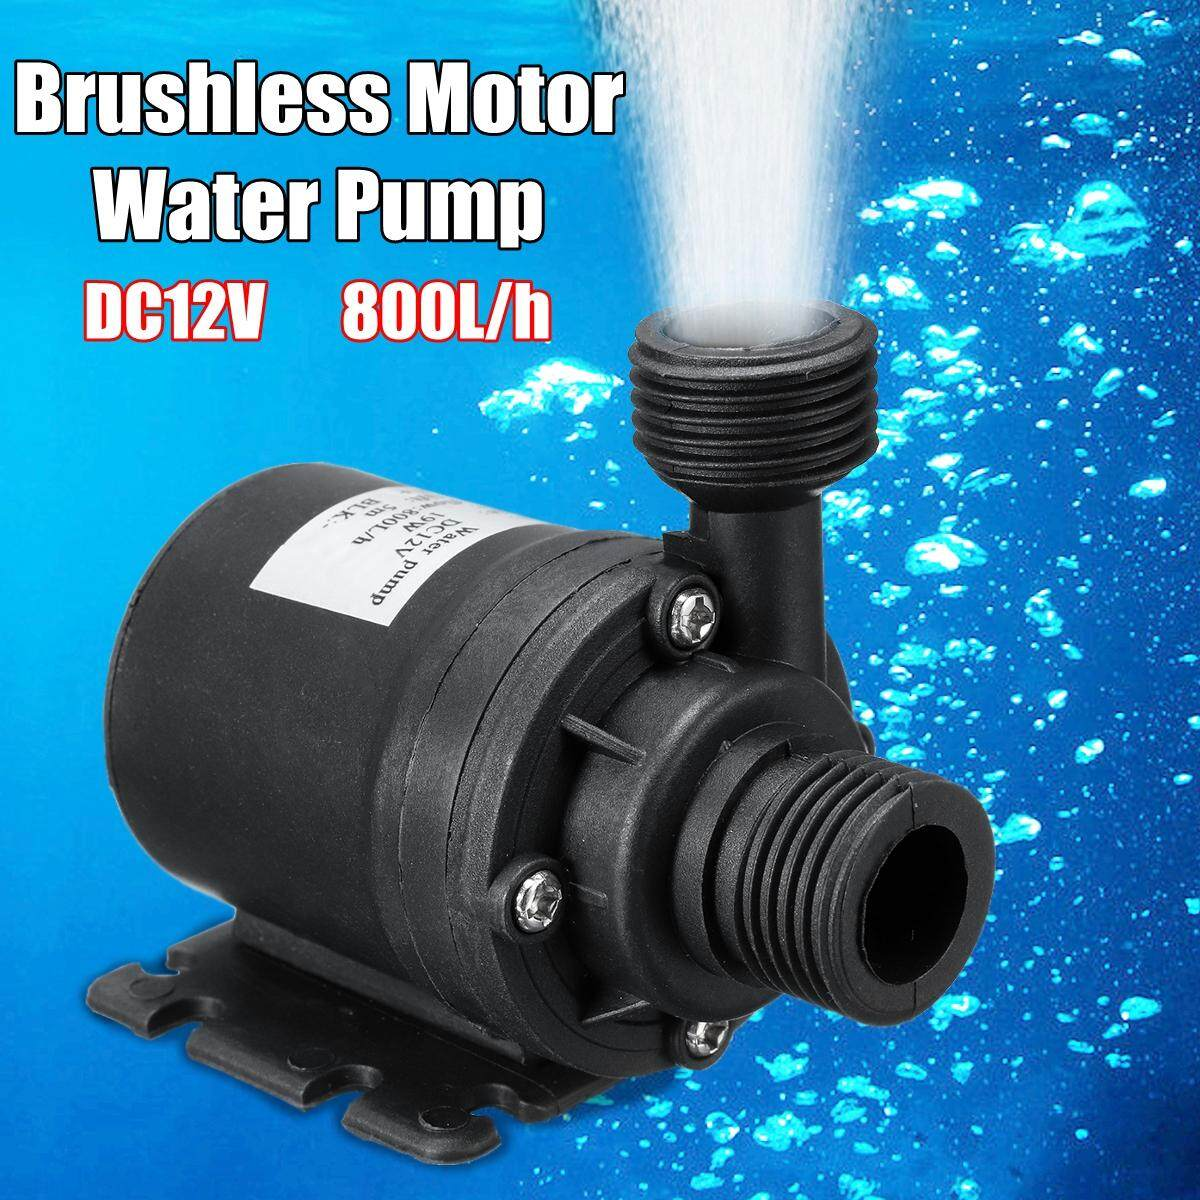 Engine Water Pumps For Sale Auto Water Pumps Online Brands Prices